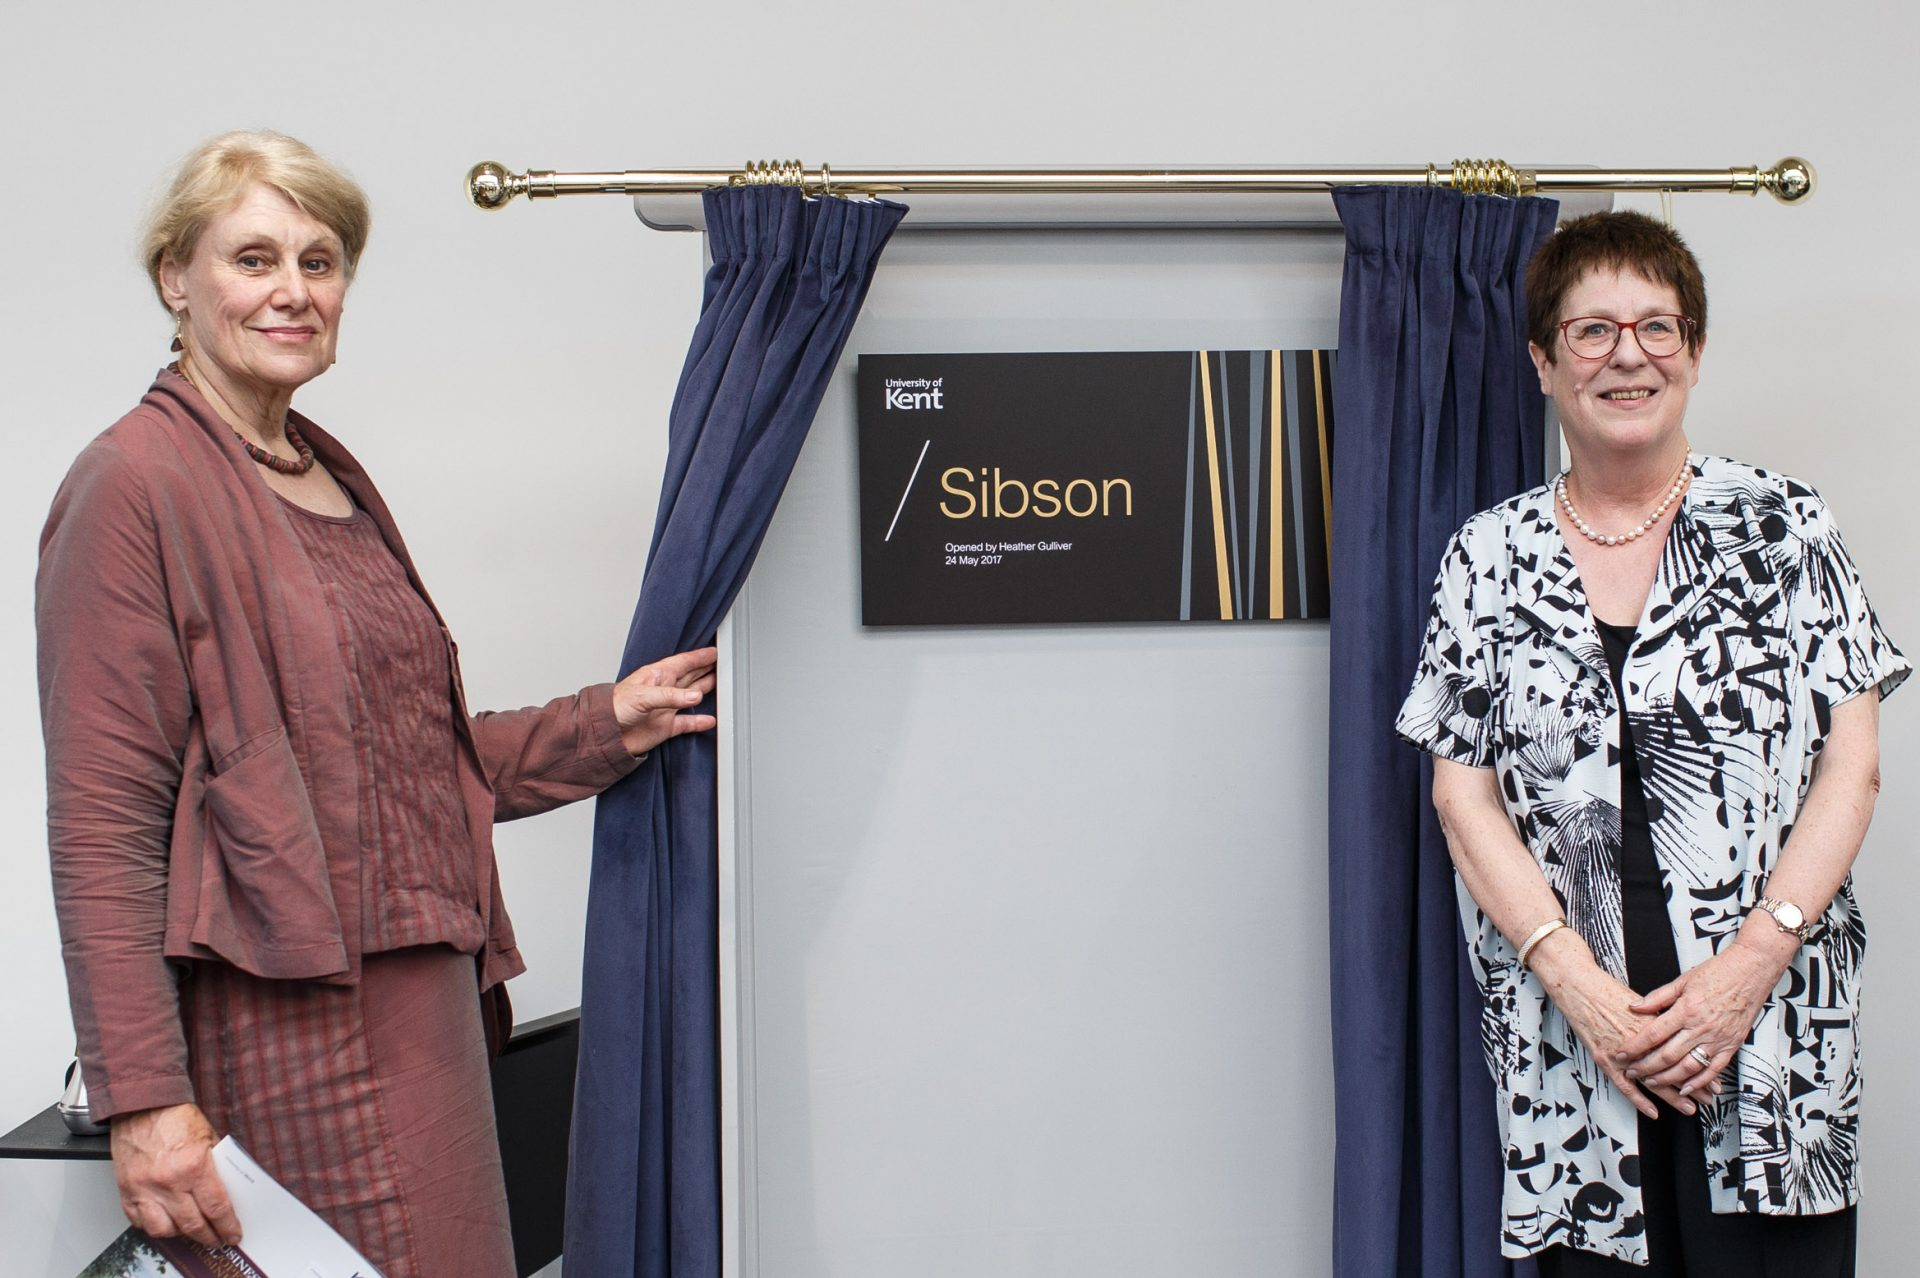 Helen Gulliver and Vice-Chancellor Professor Dame Julia Goodfellow at Sibson opening